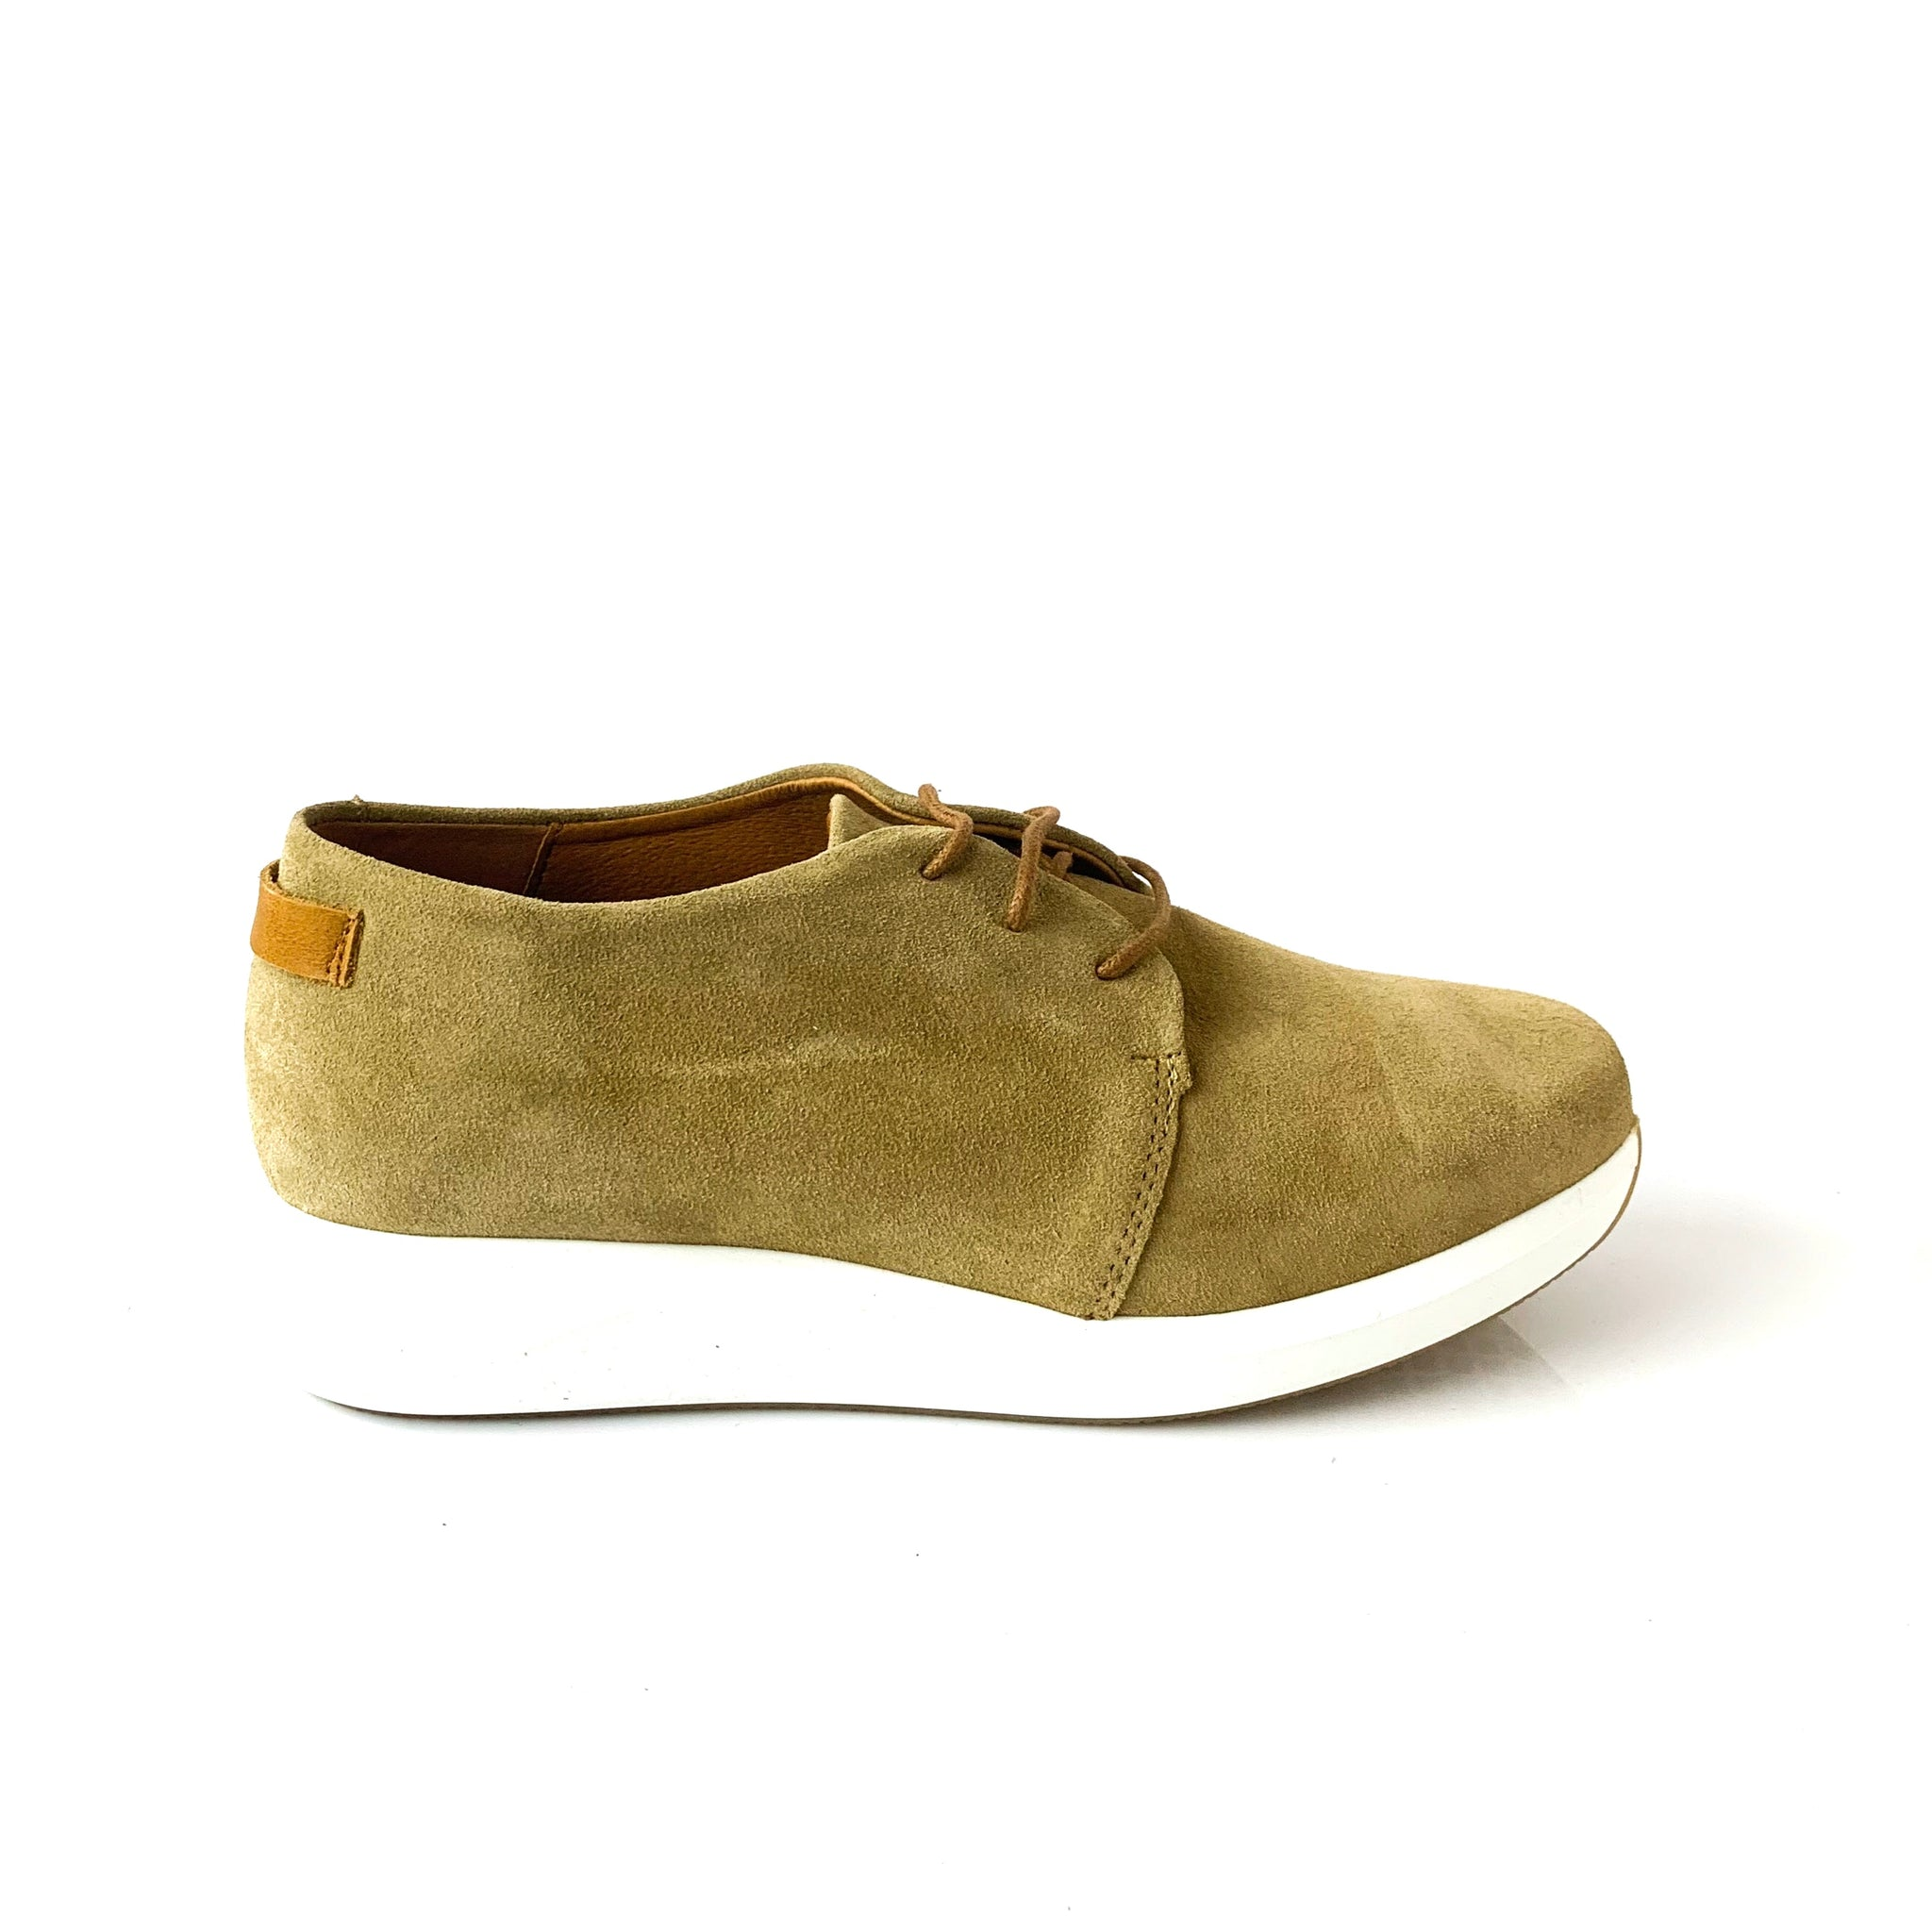 NICOLA | Beige Suede Elevated Runners - TrystShoes